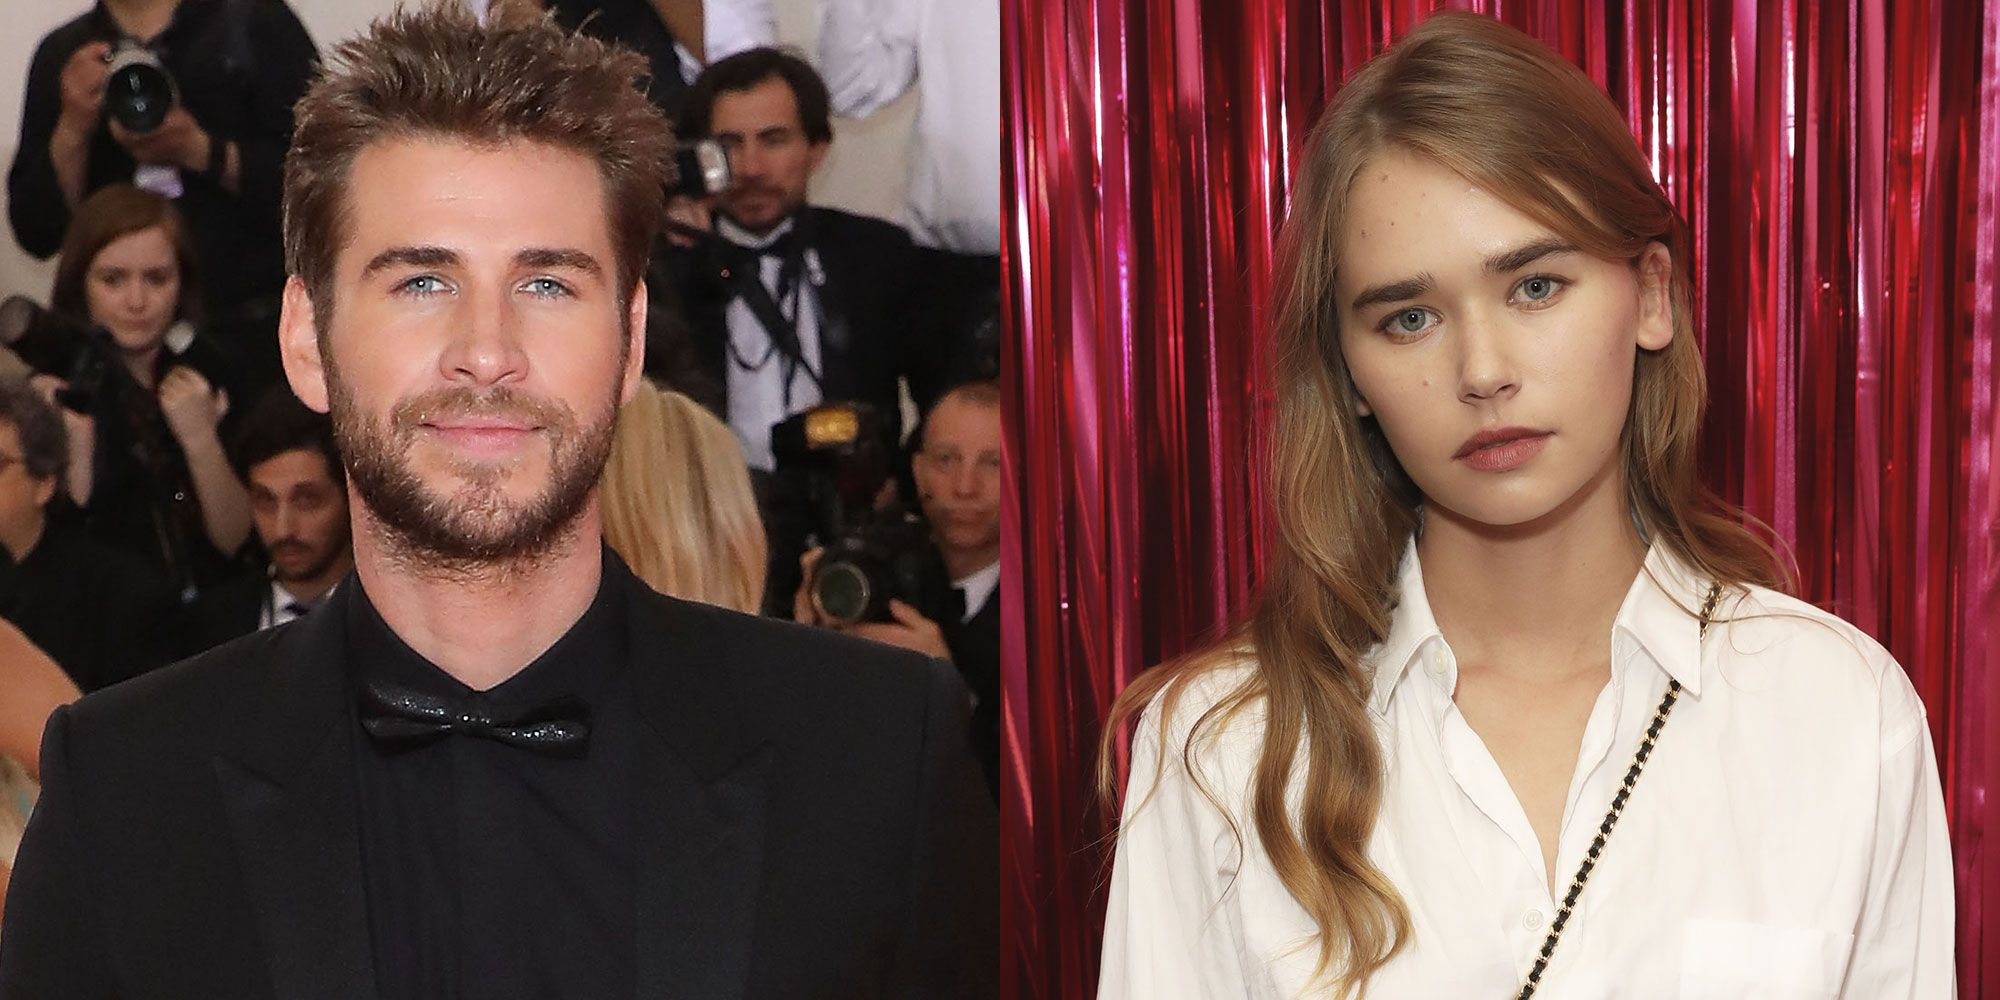 Liam Hemsworth Confirms He's Dating Gabriella Brooks With a Beach Kiss Photo